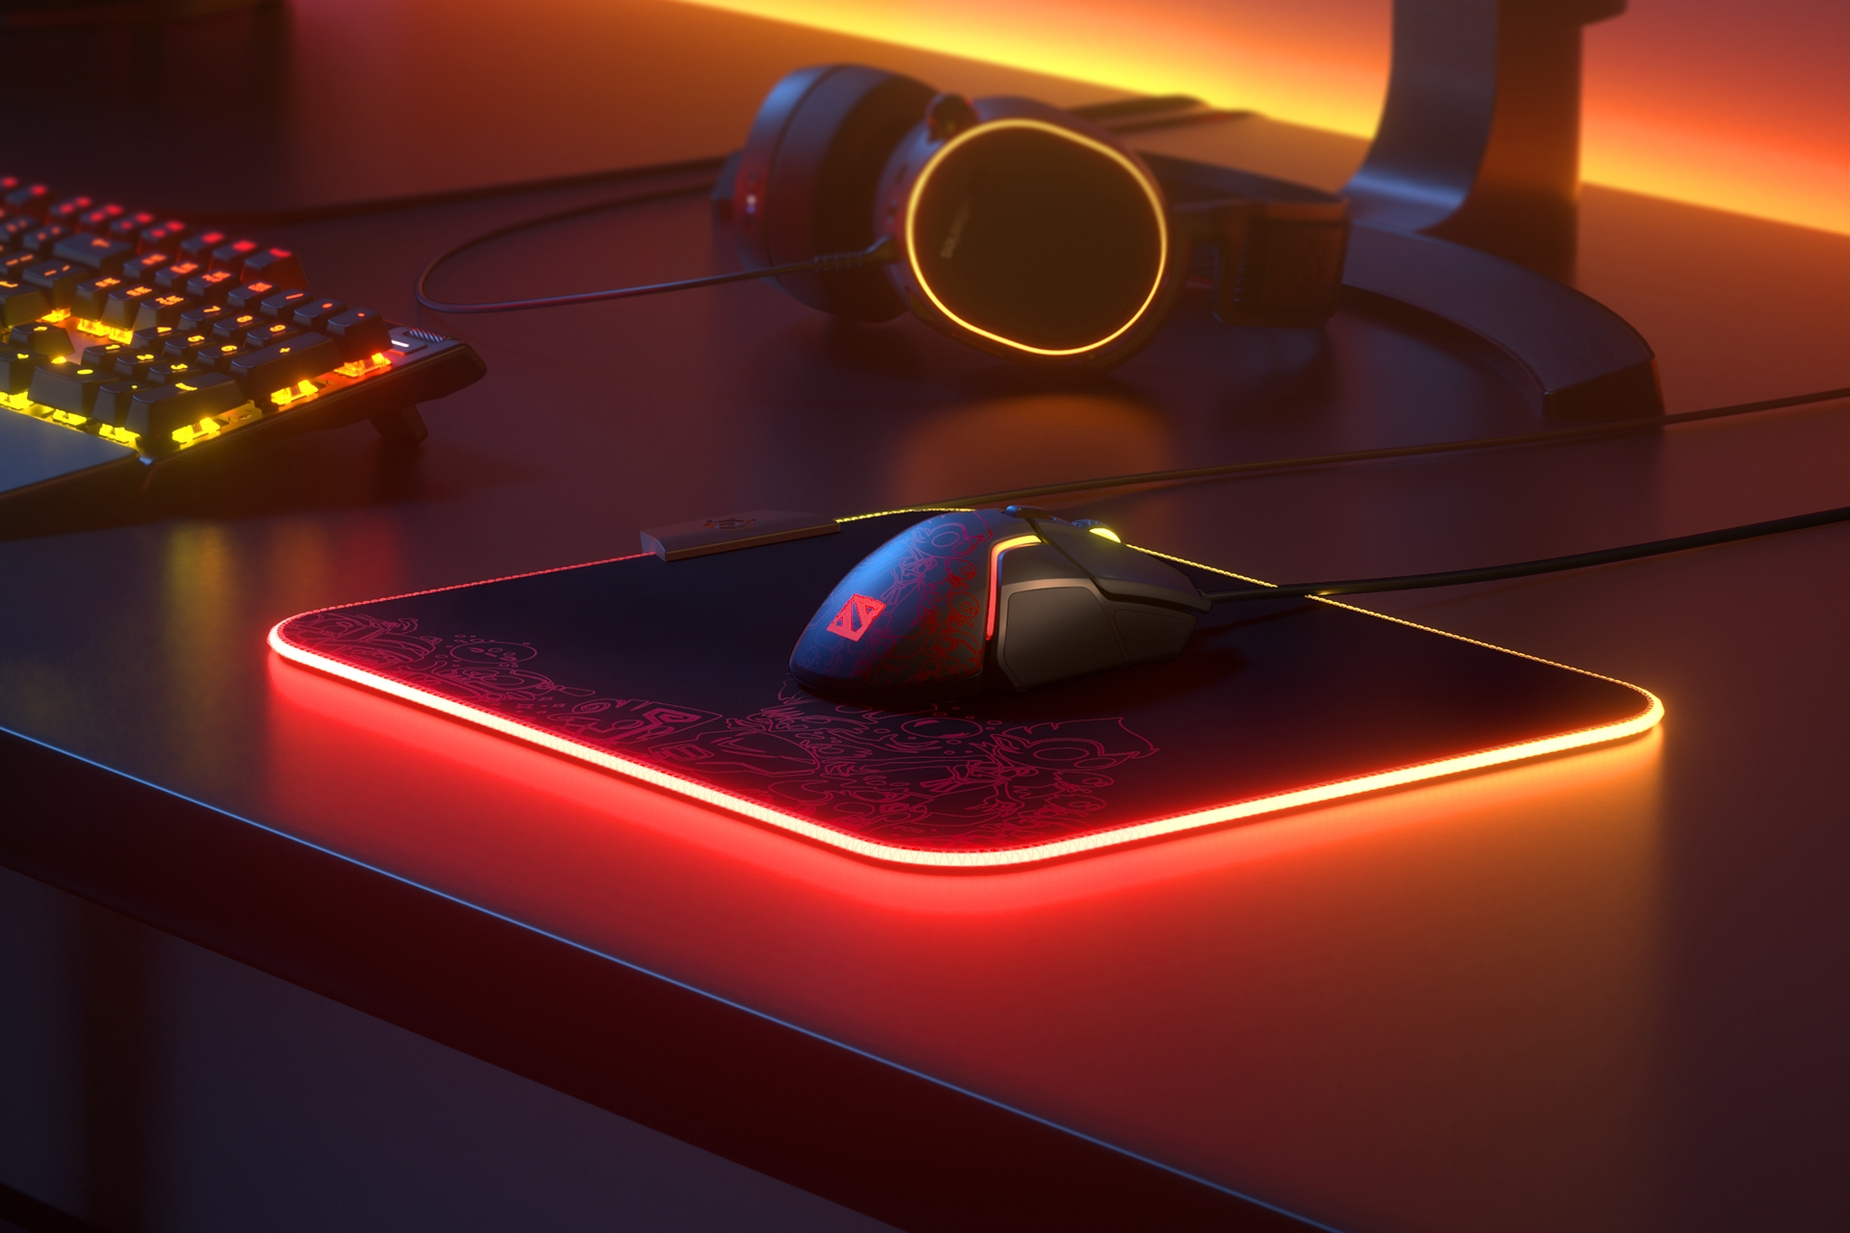 Rival 600 Dota 2 Edition on RGB mousepad with keyboard and headset